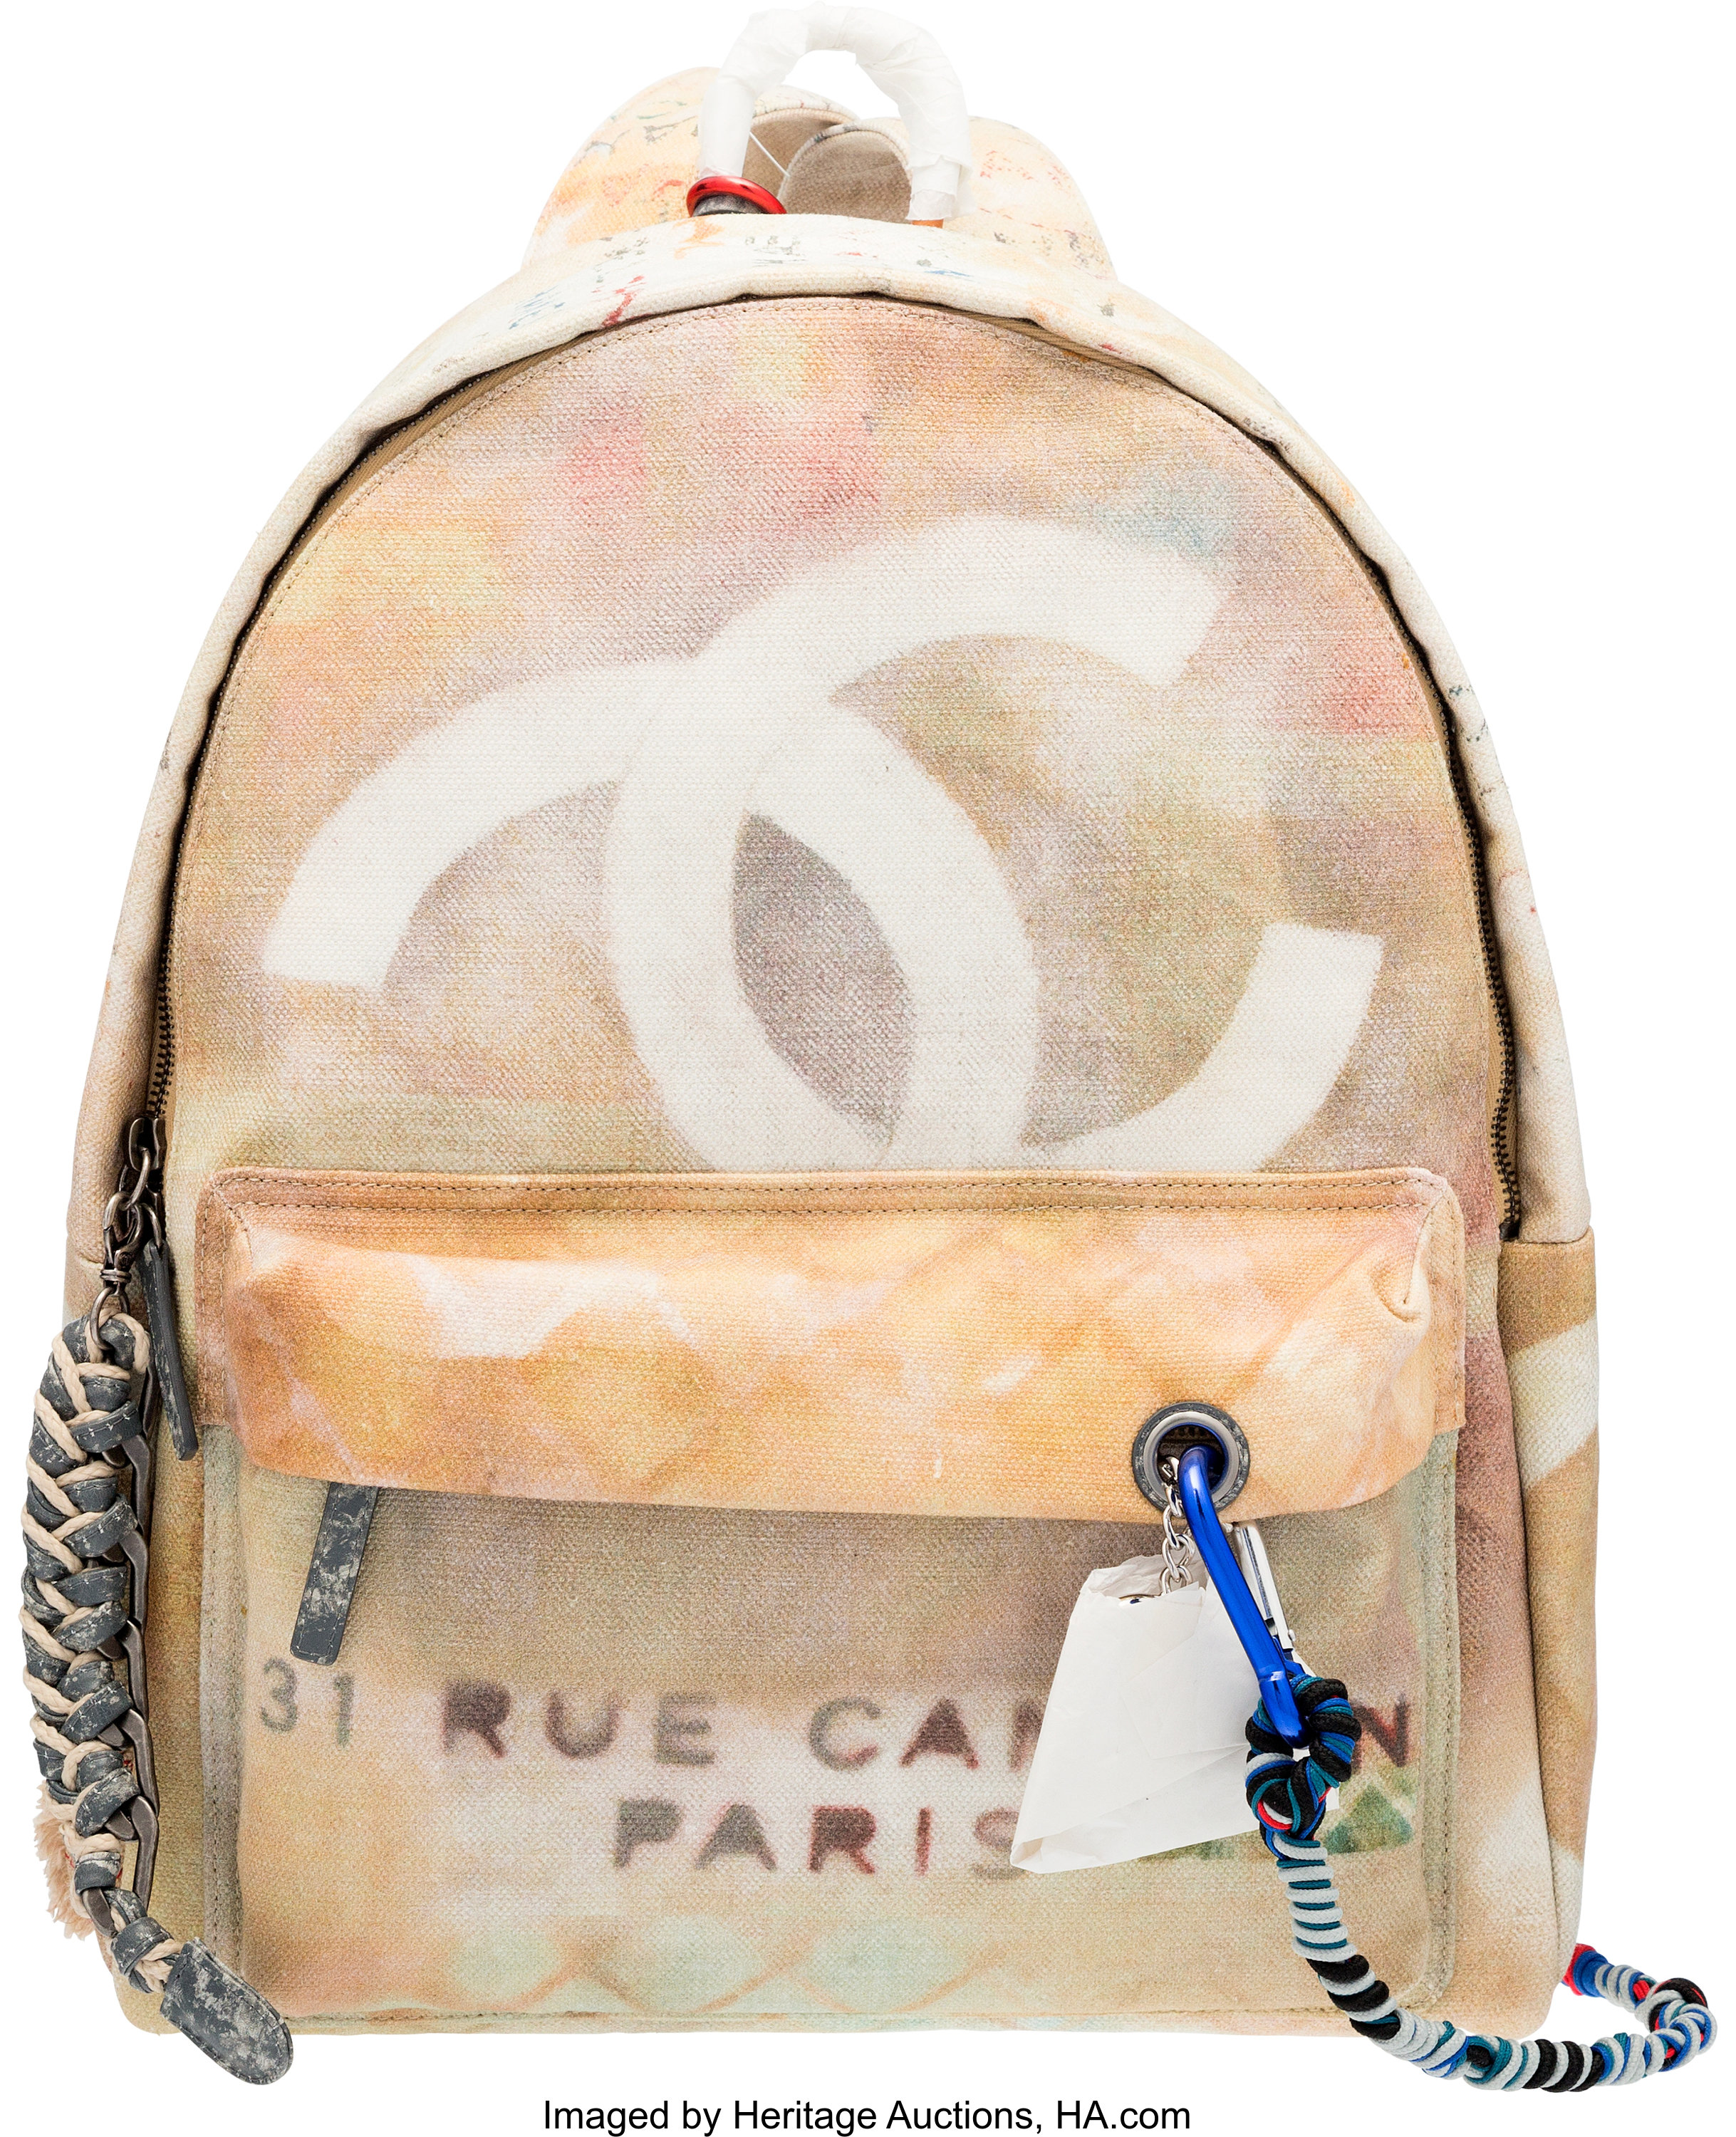 Chanel Runway Graffiti Art School Canvas Backpack Condition 1 Lot 58028 Heritage Auctions